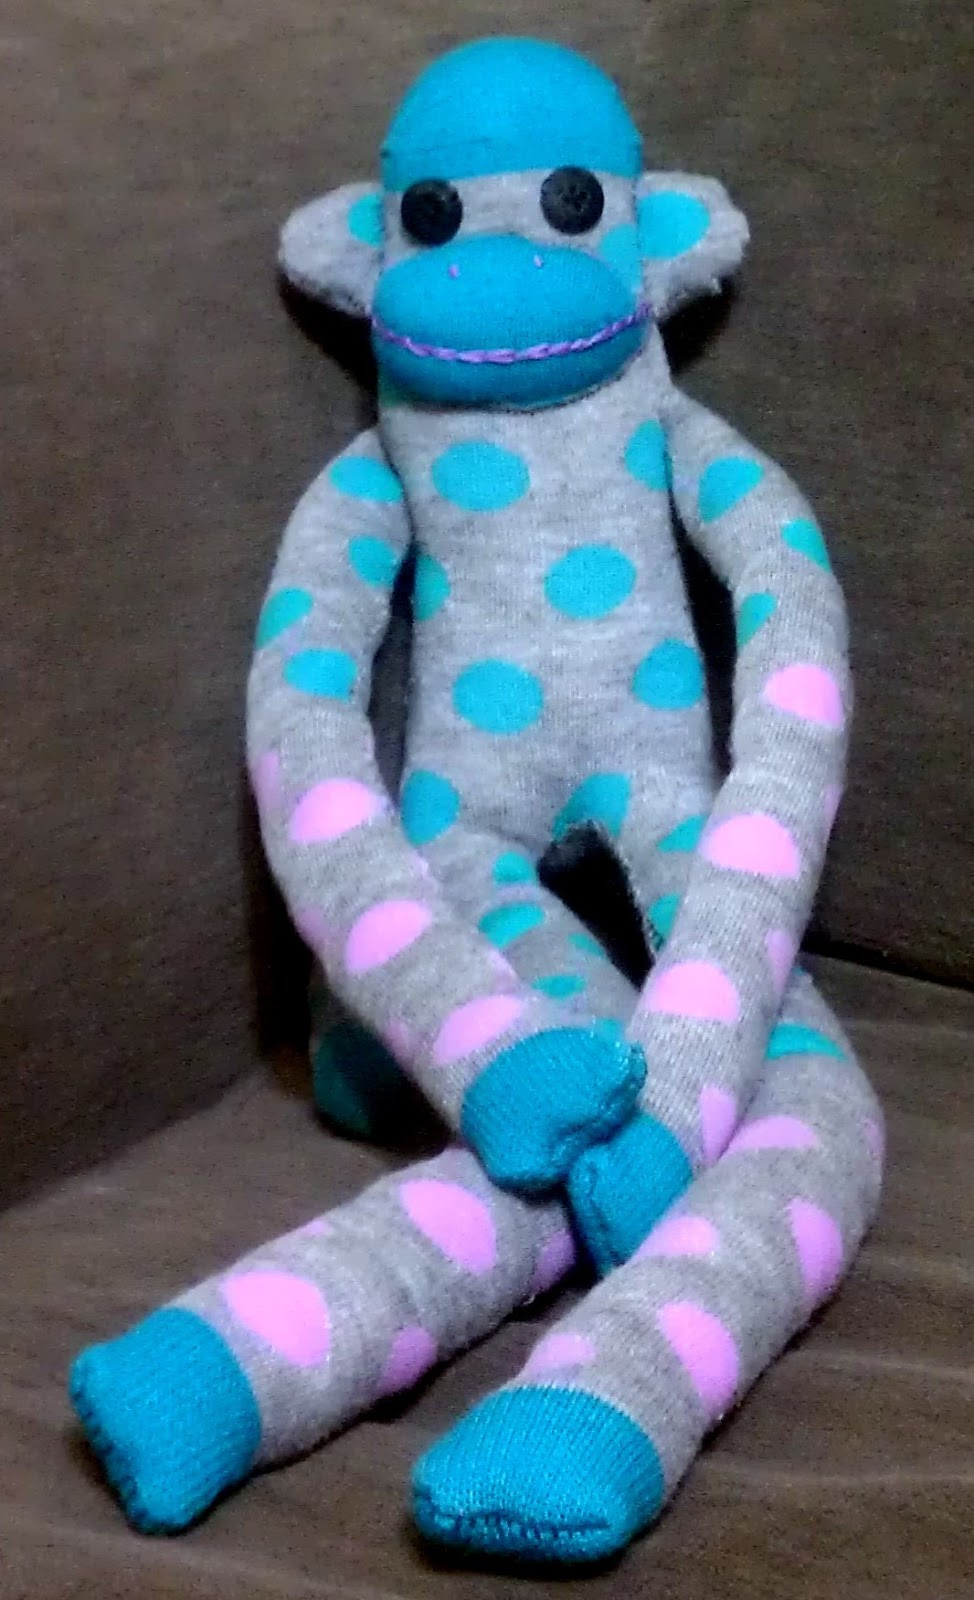 Sock Monkey | Creativity in Therapy | Carolyn Mehlomakulu